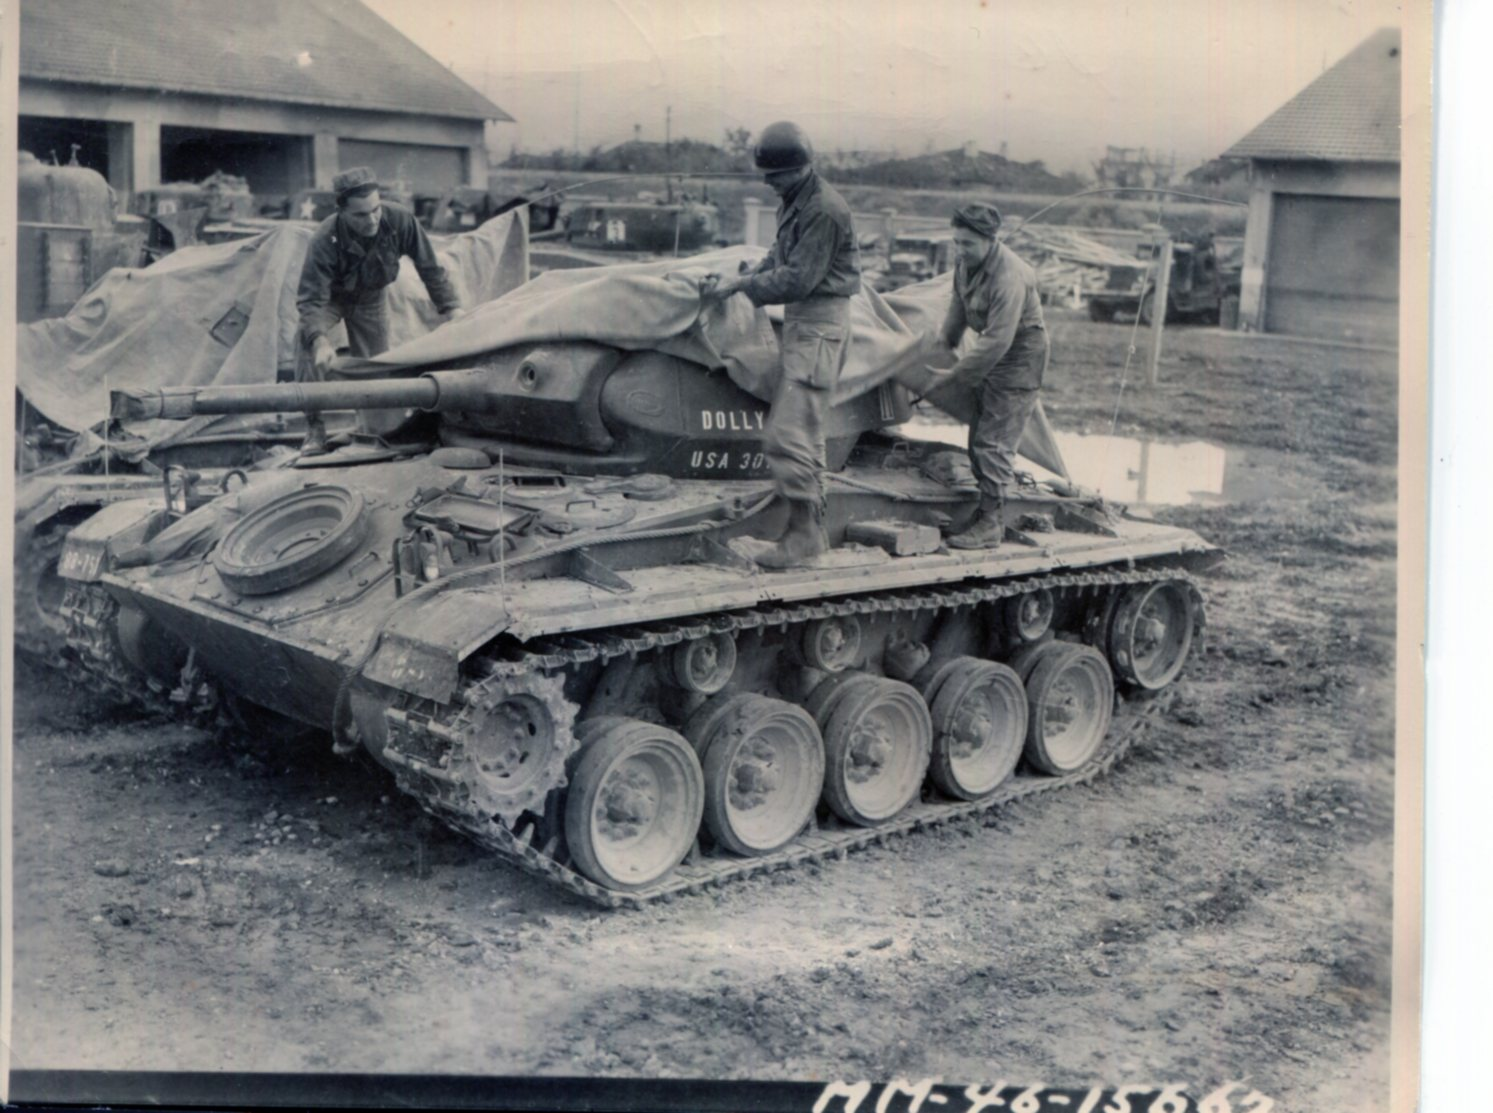 The M24 Chaffee Light Tank - The Campaign for the National Museum of